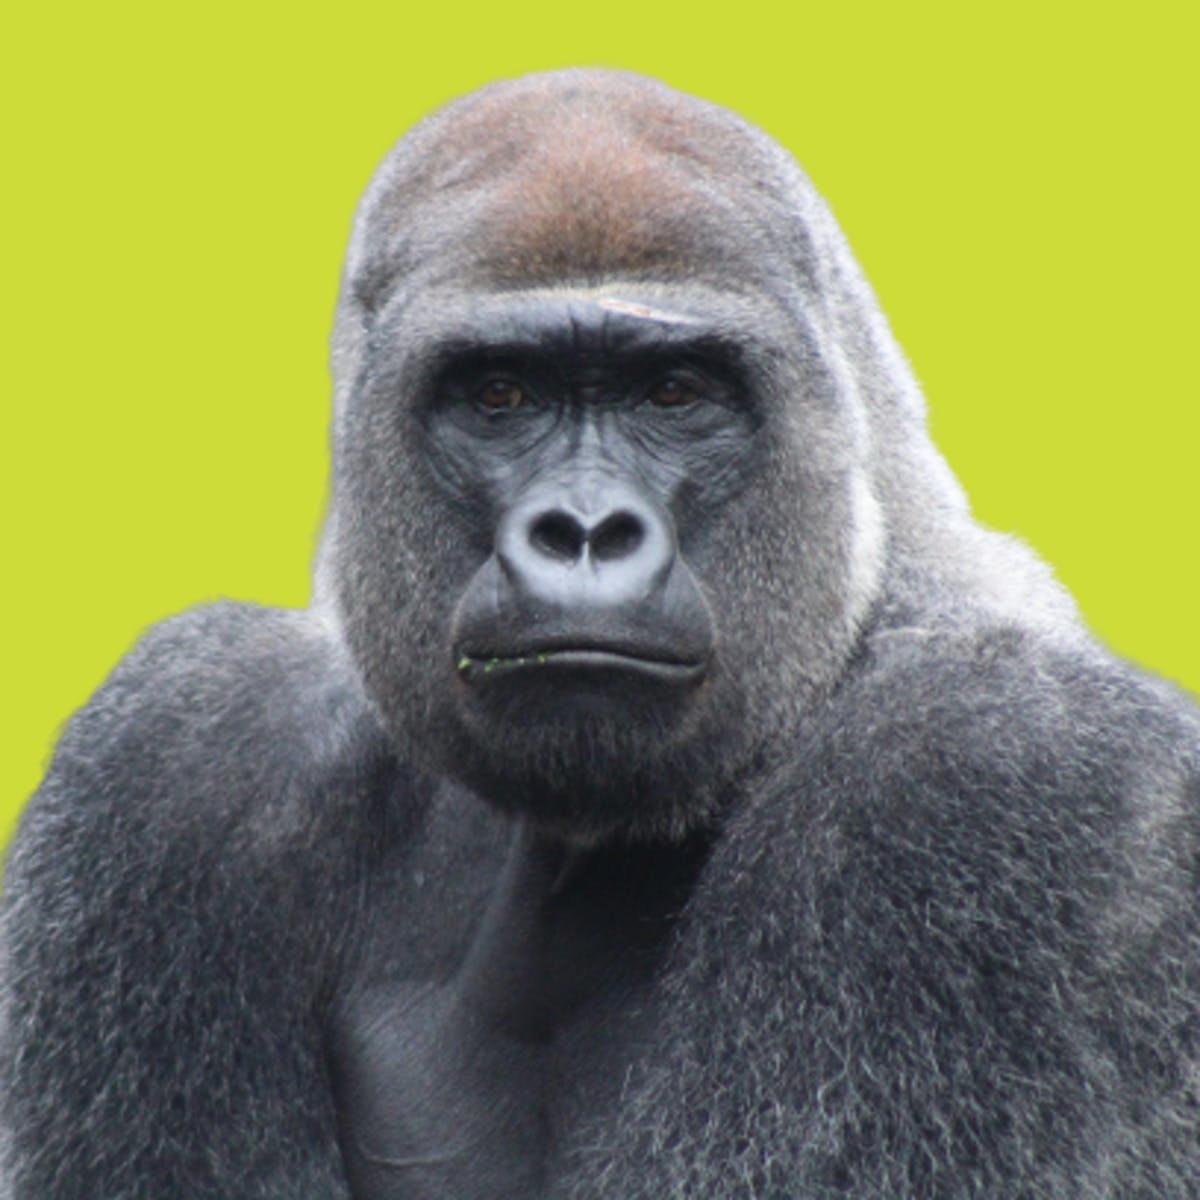 How gorillas eat African walnuts could make us rethink early human diets